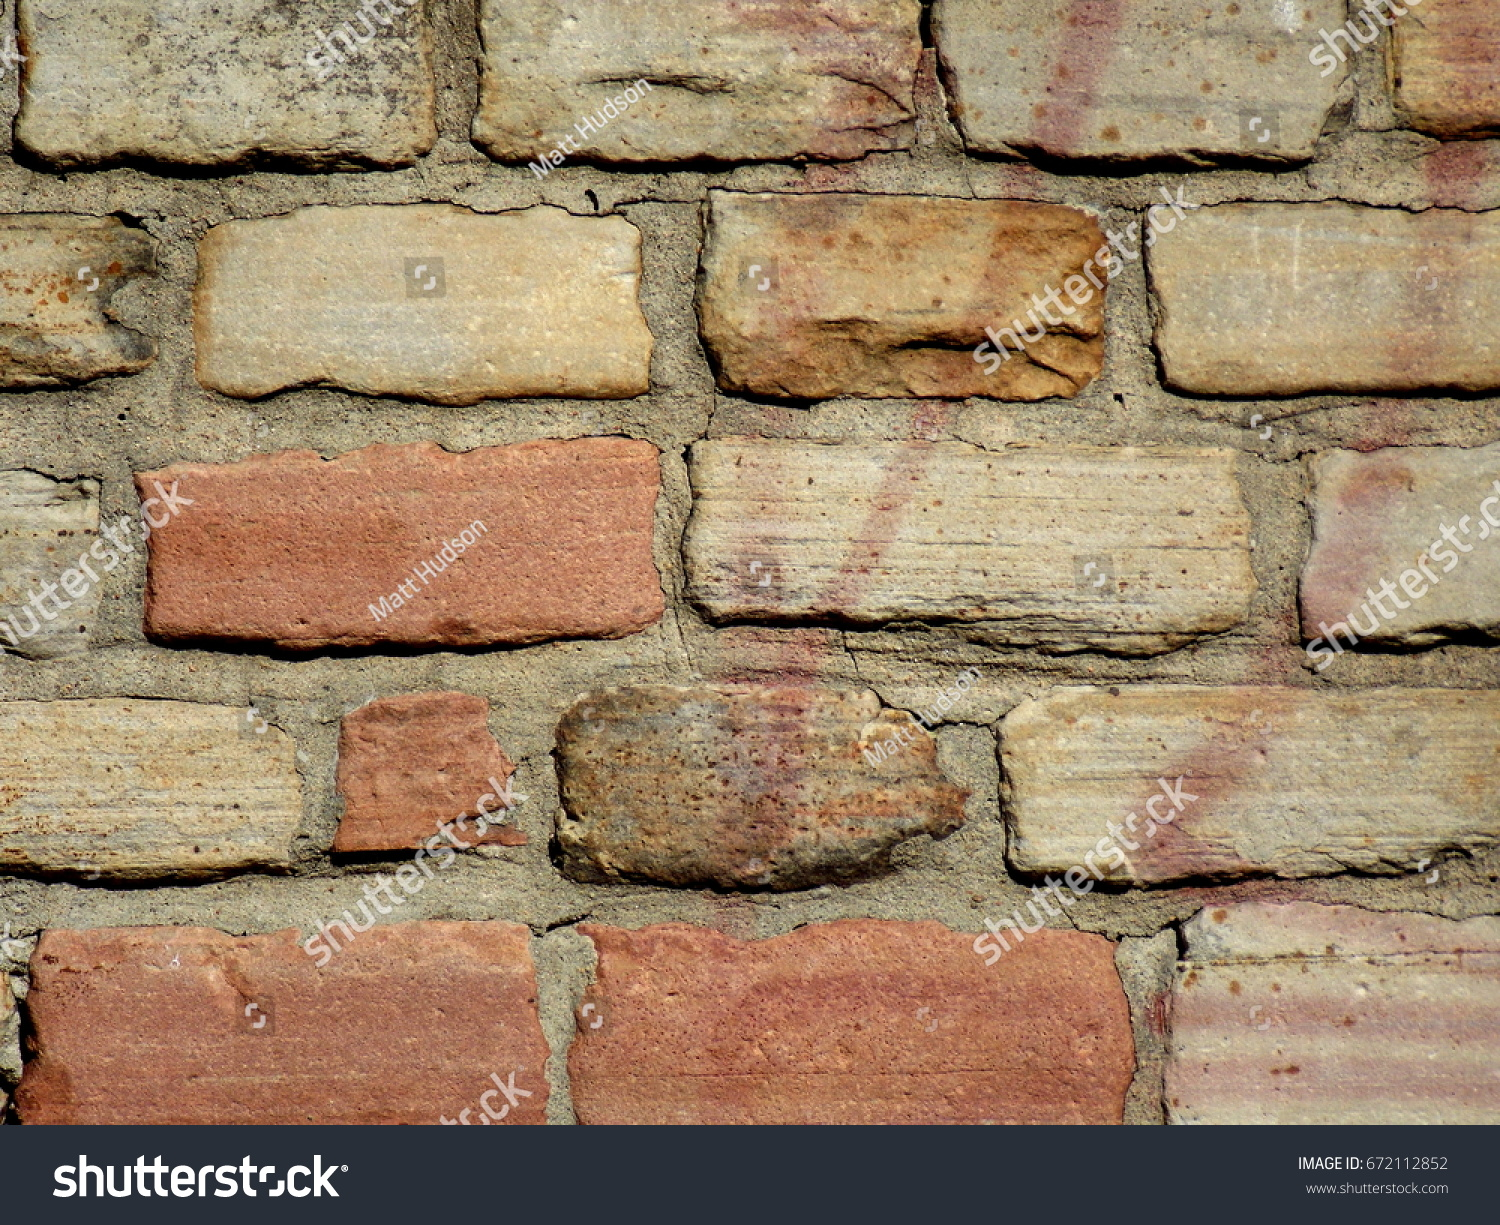 Sandstone block brick wall with fading graffiti background texture